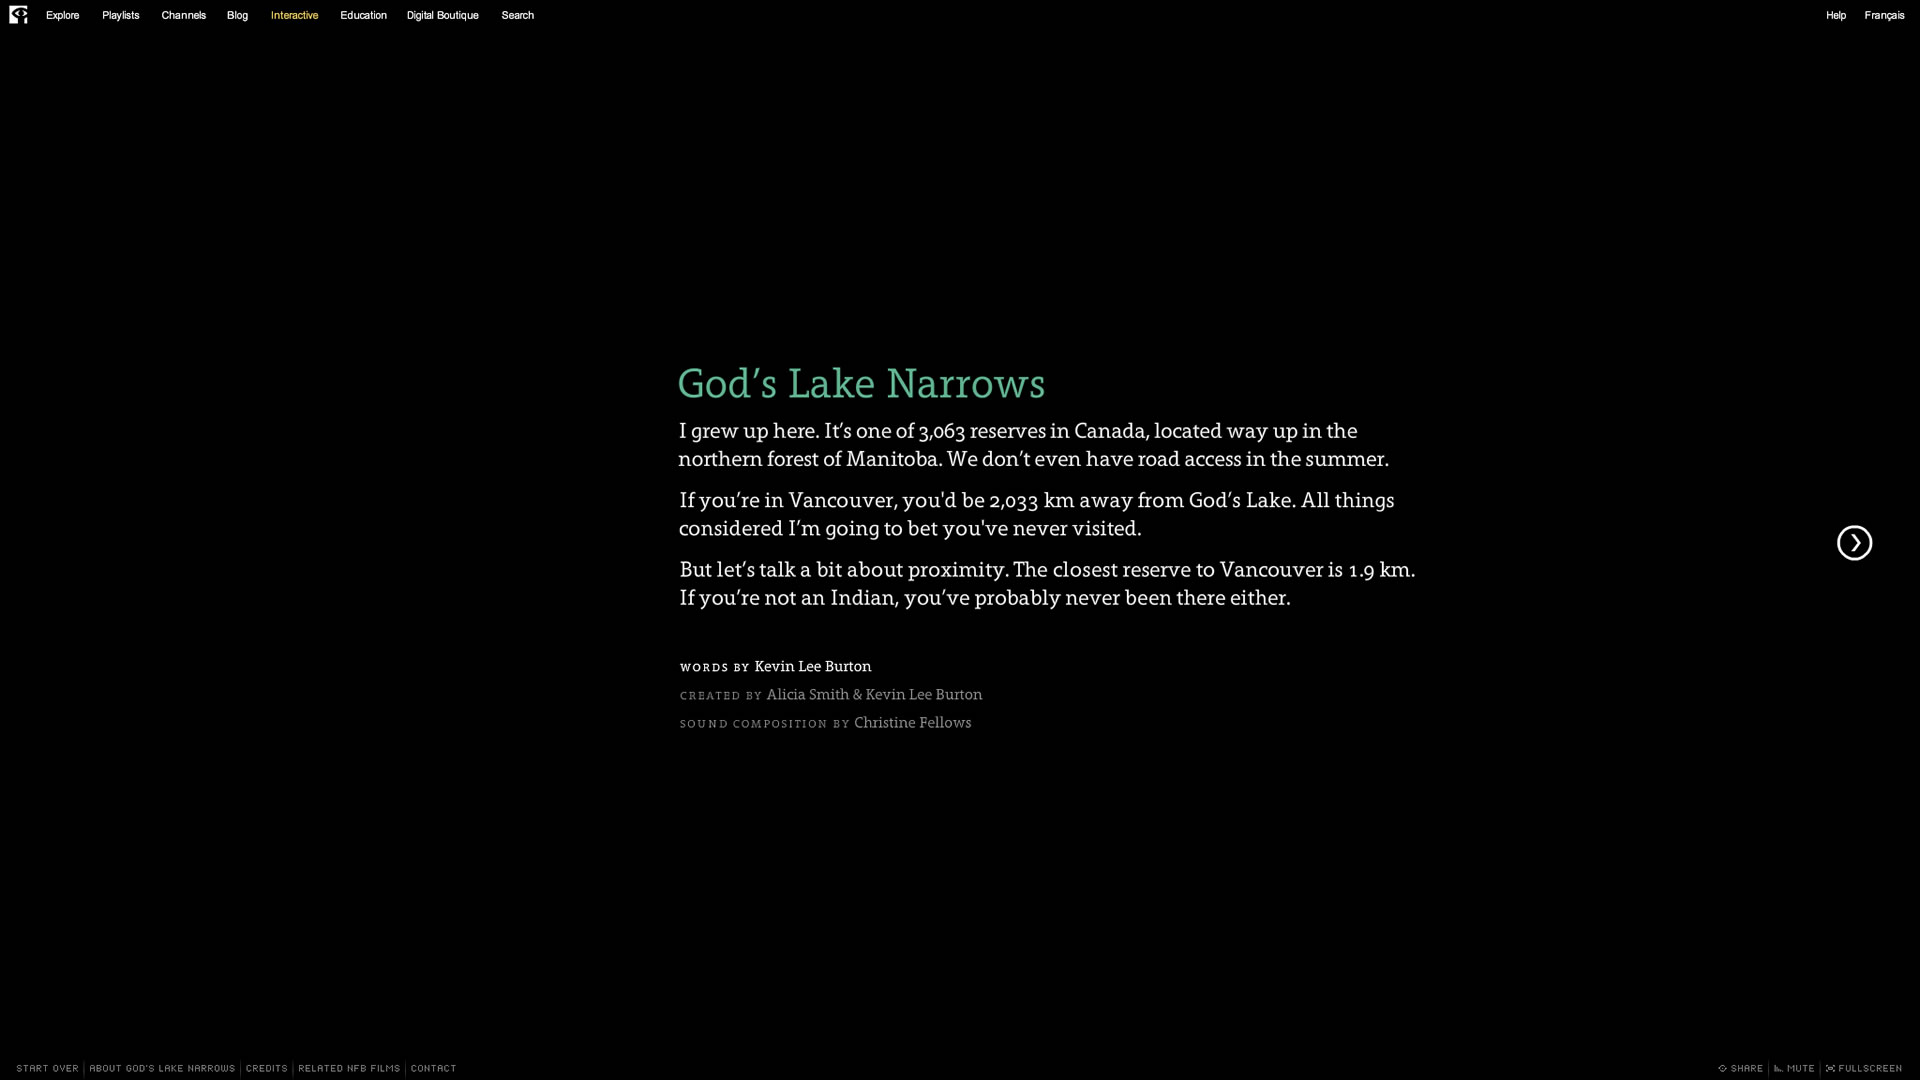 God's Lake Narrows - Introduction